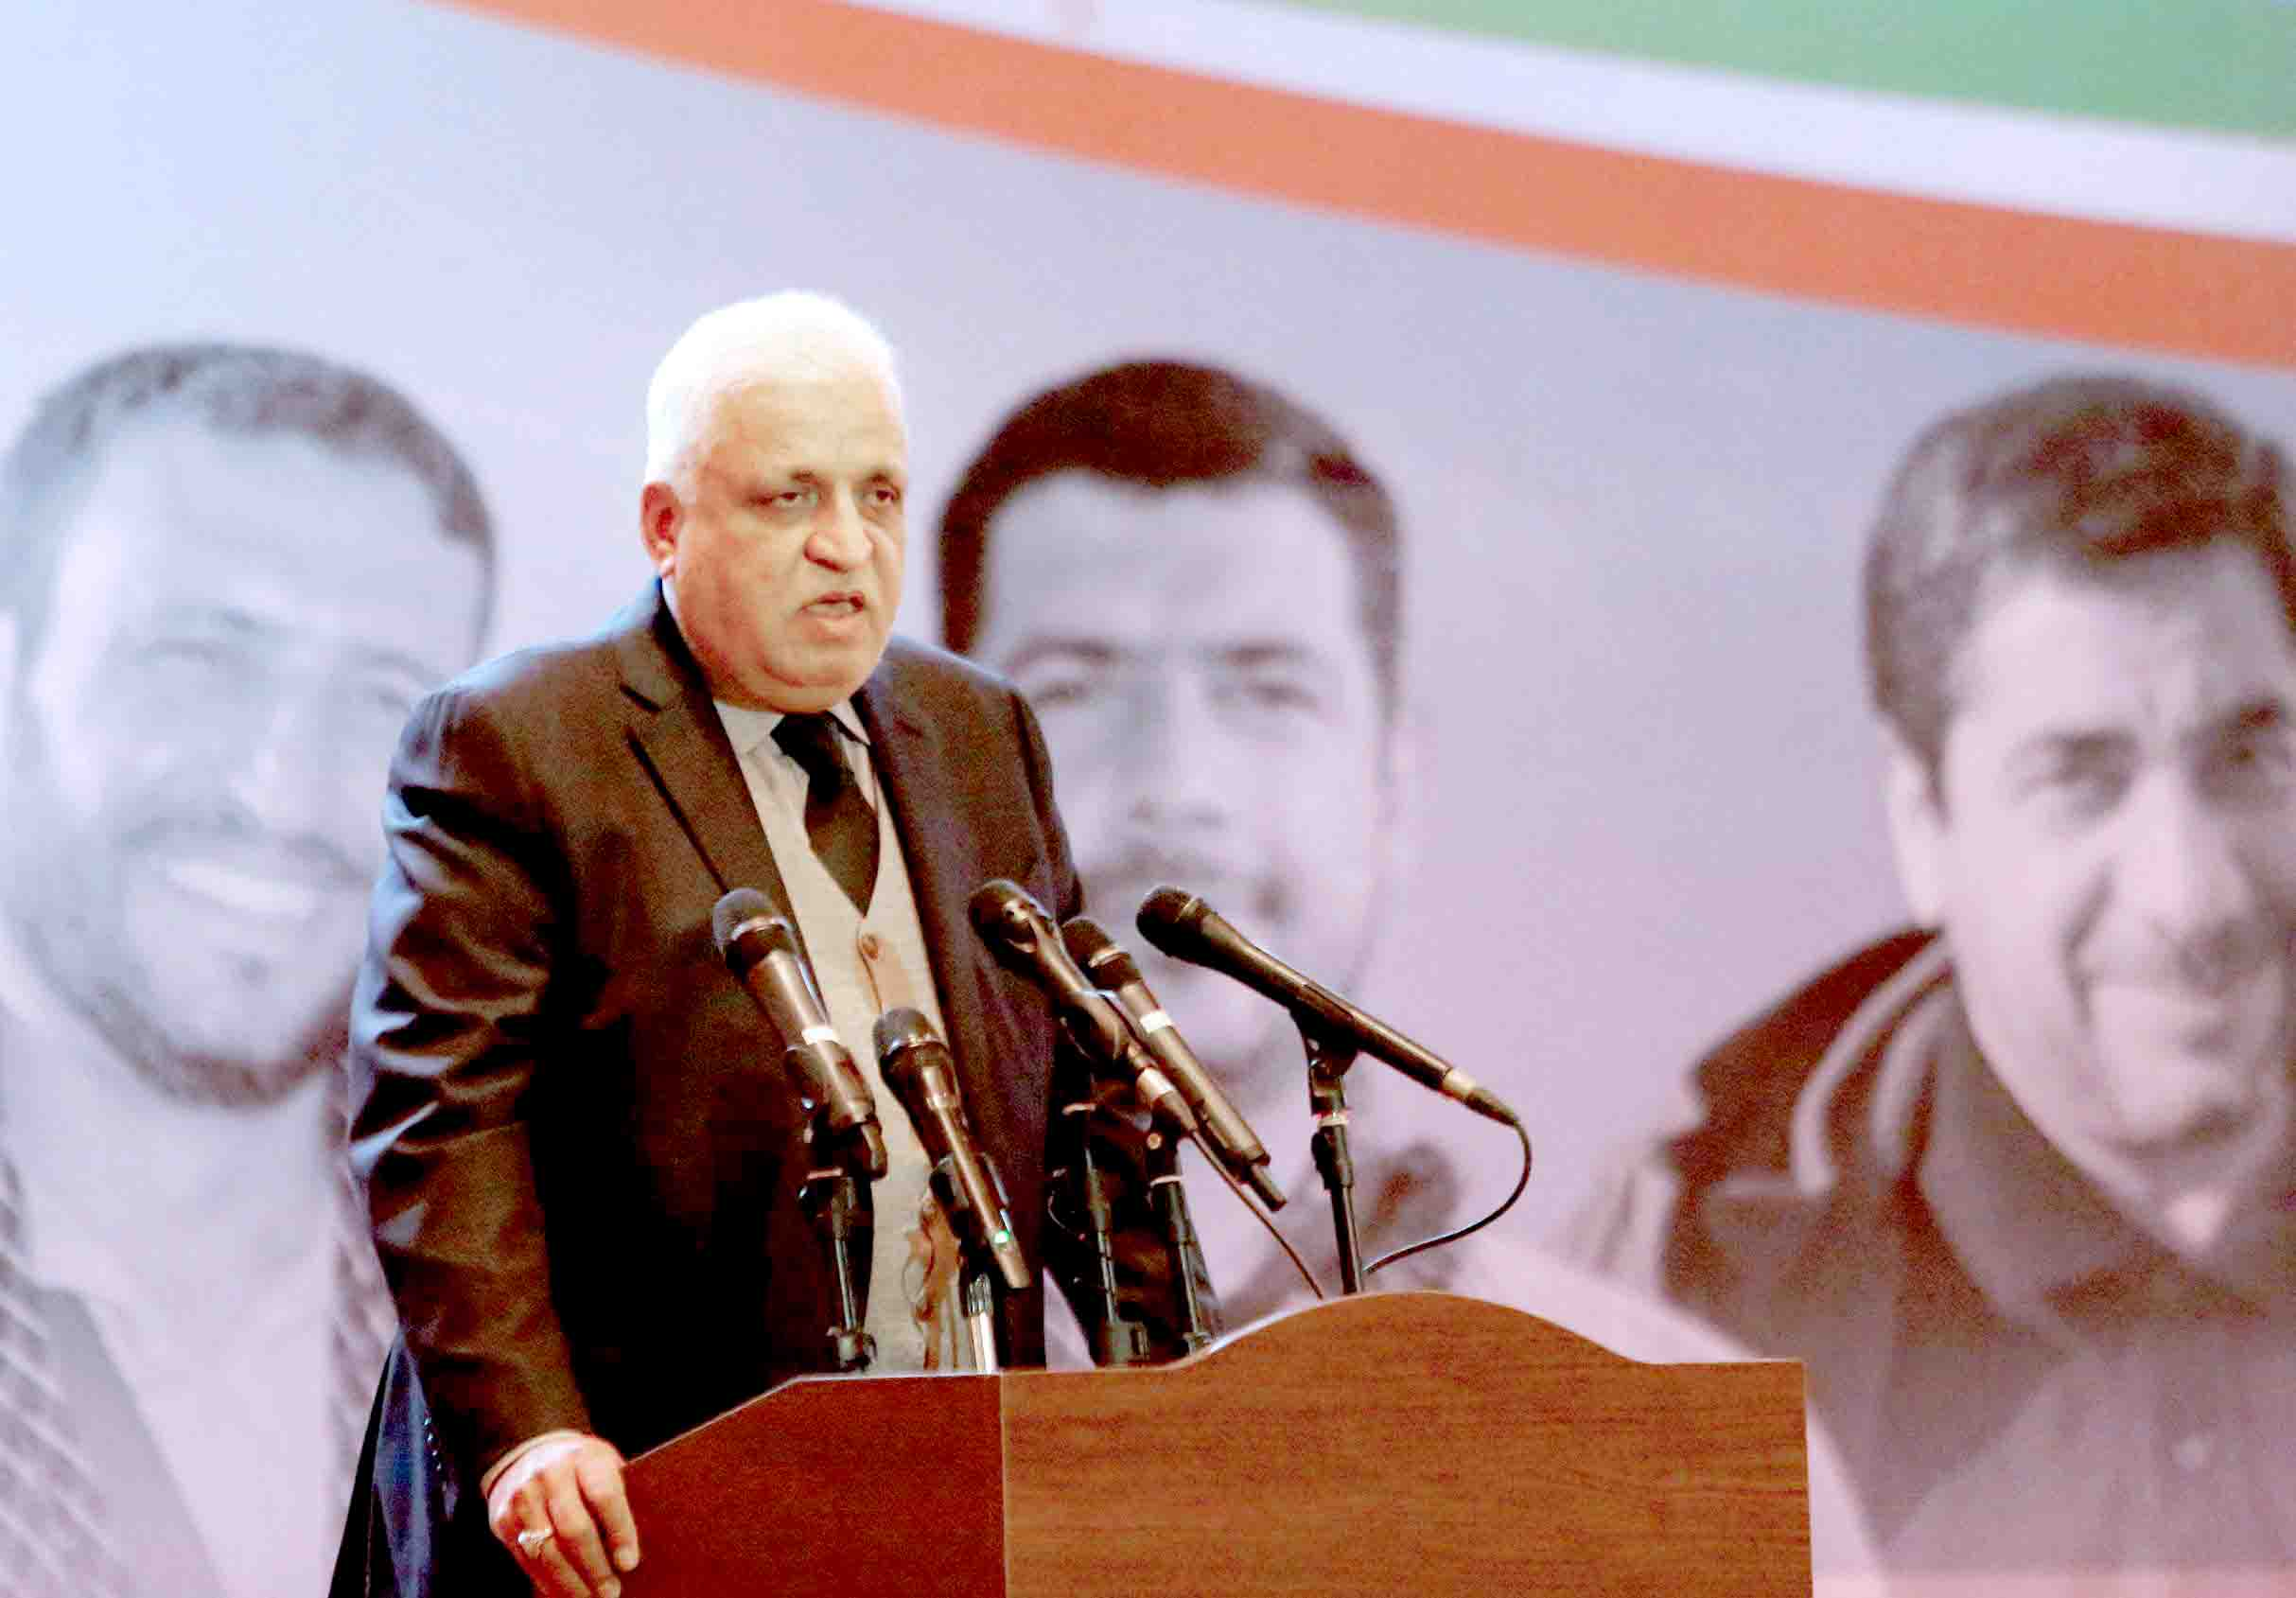 Iraqi's national security adviser Faleh Fayyad, who also is a leader of the Popular Mobilisation Force known as the Hashed al-Shaabi, addresses a memorial service held in Baghdad on February 11, 2020 to mark 40 days since the killing of Iran's Qasem Soleimani. (AFP)